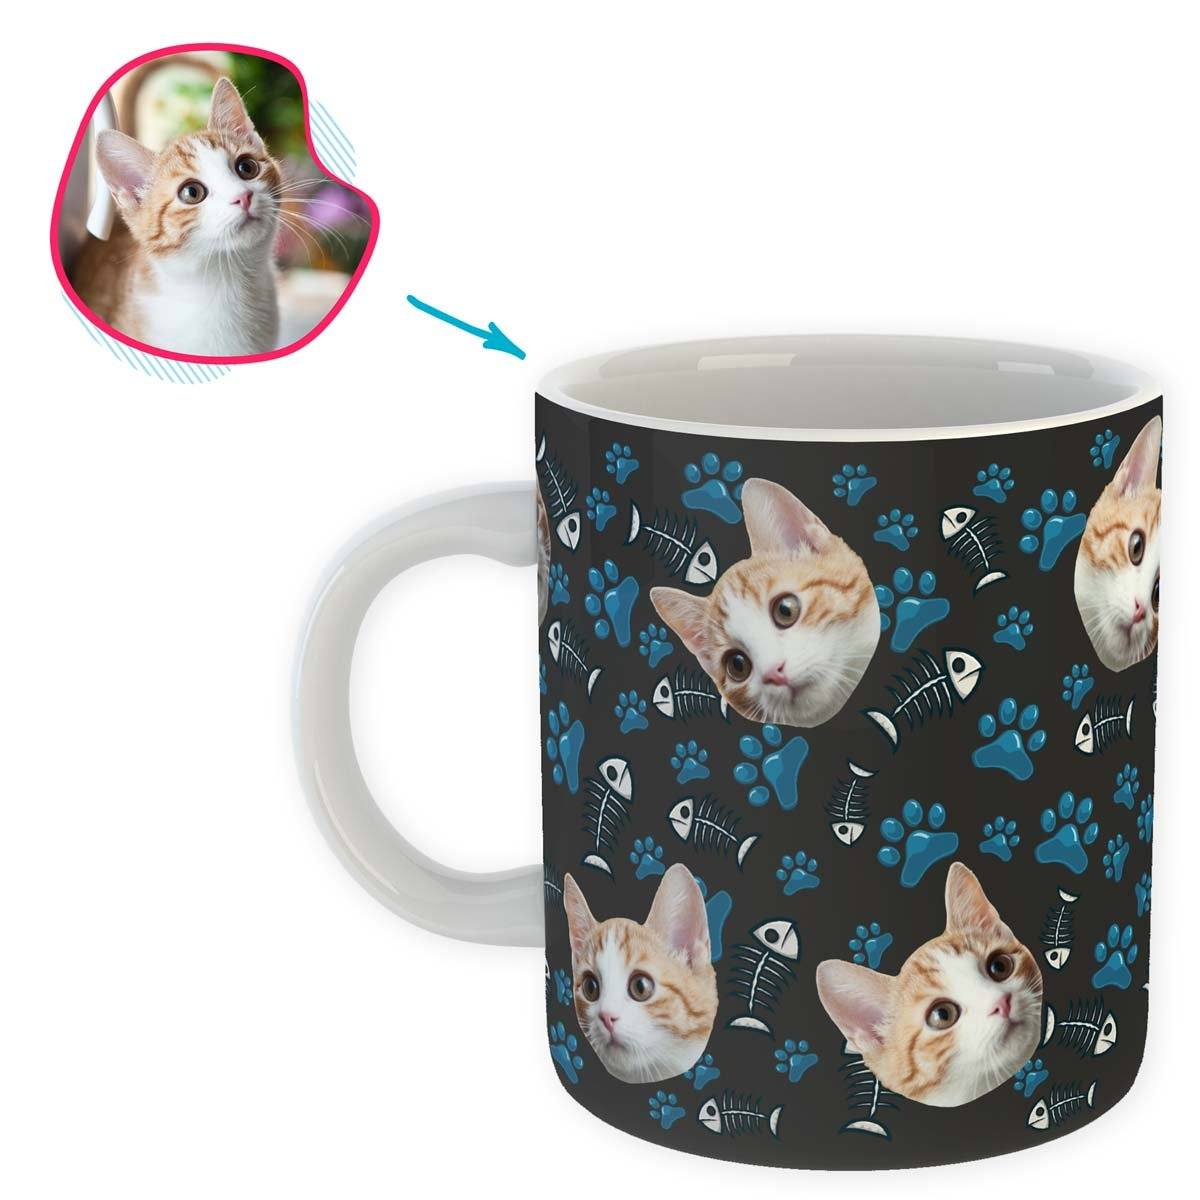 dark Cat mug personalized with photo of face printed on it